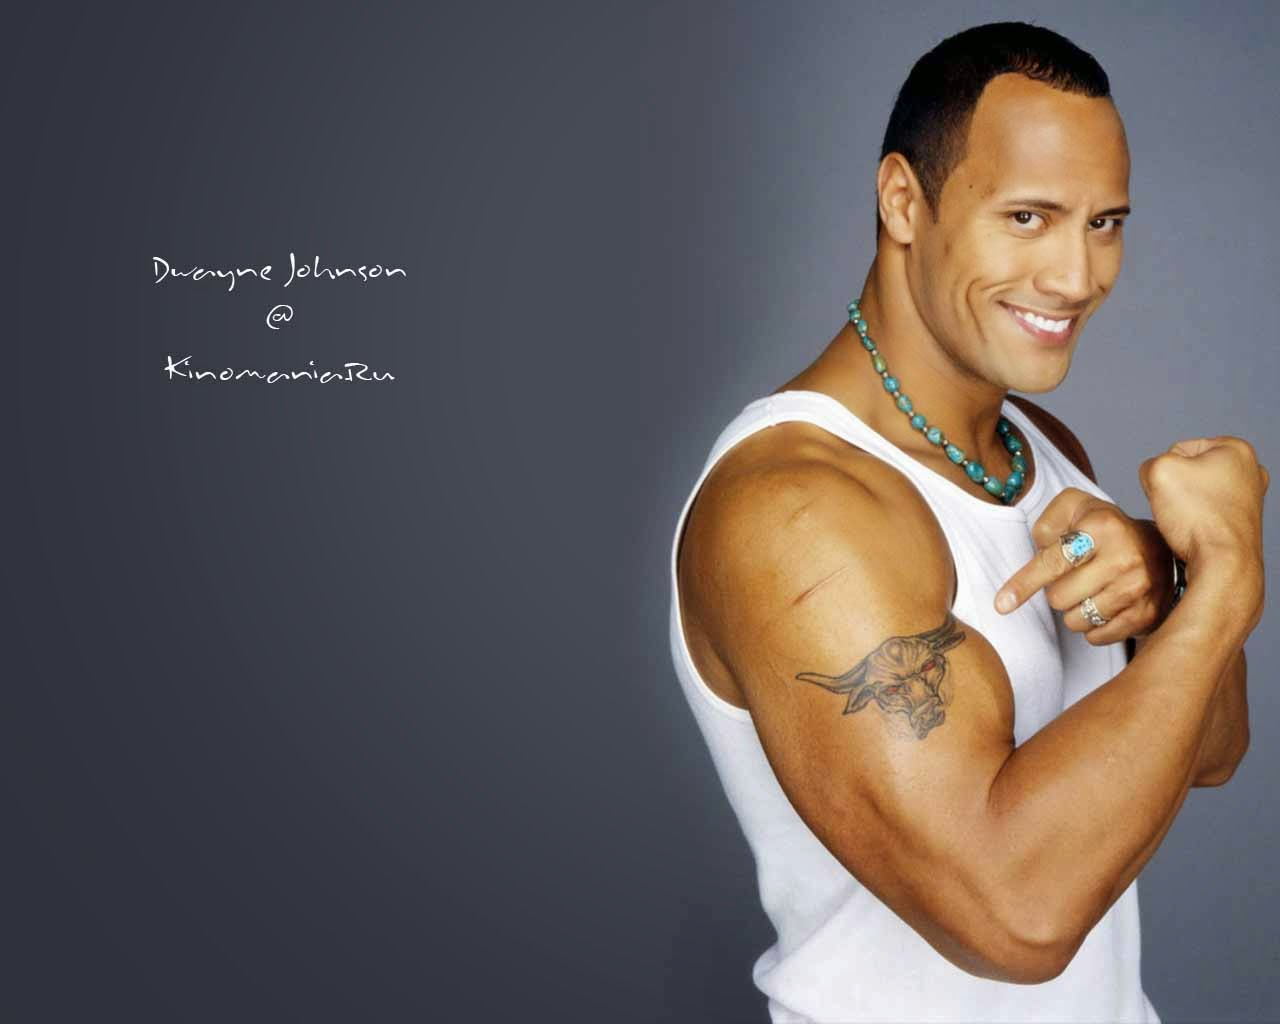 Vinis Blog 37th Entry Dwayne The Rock Johnson 1280x1024